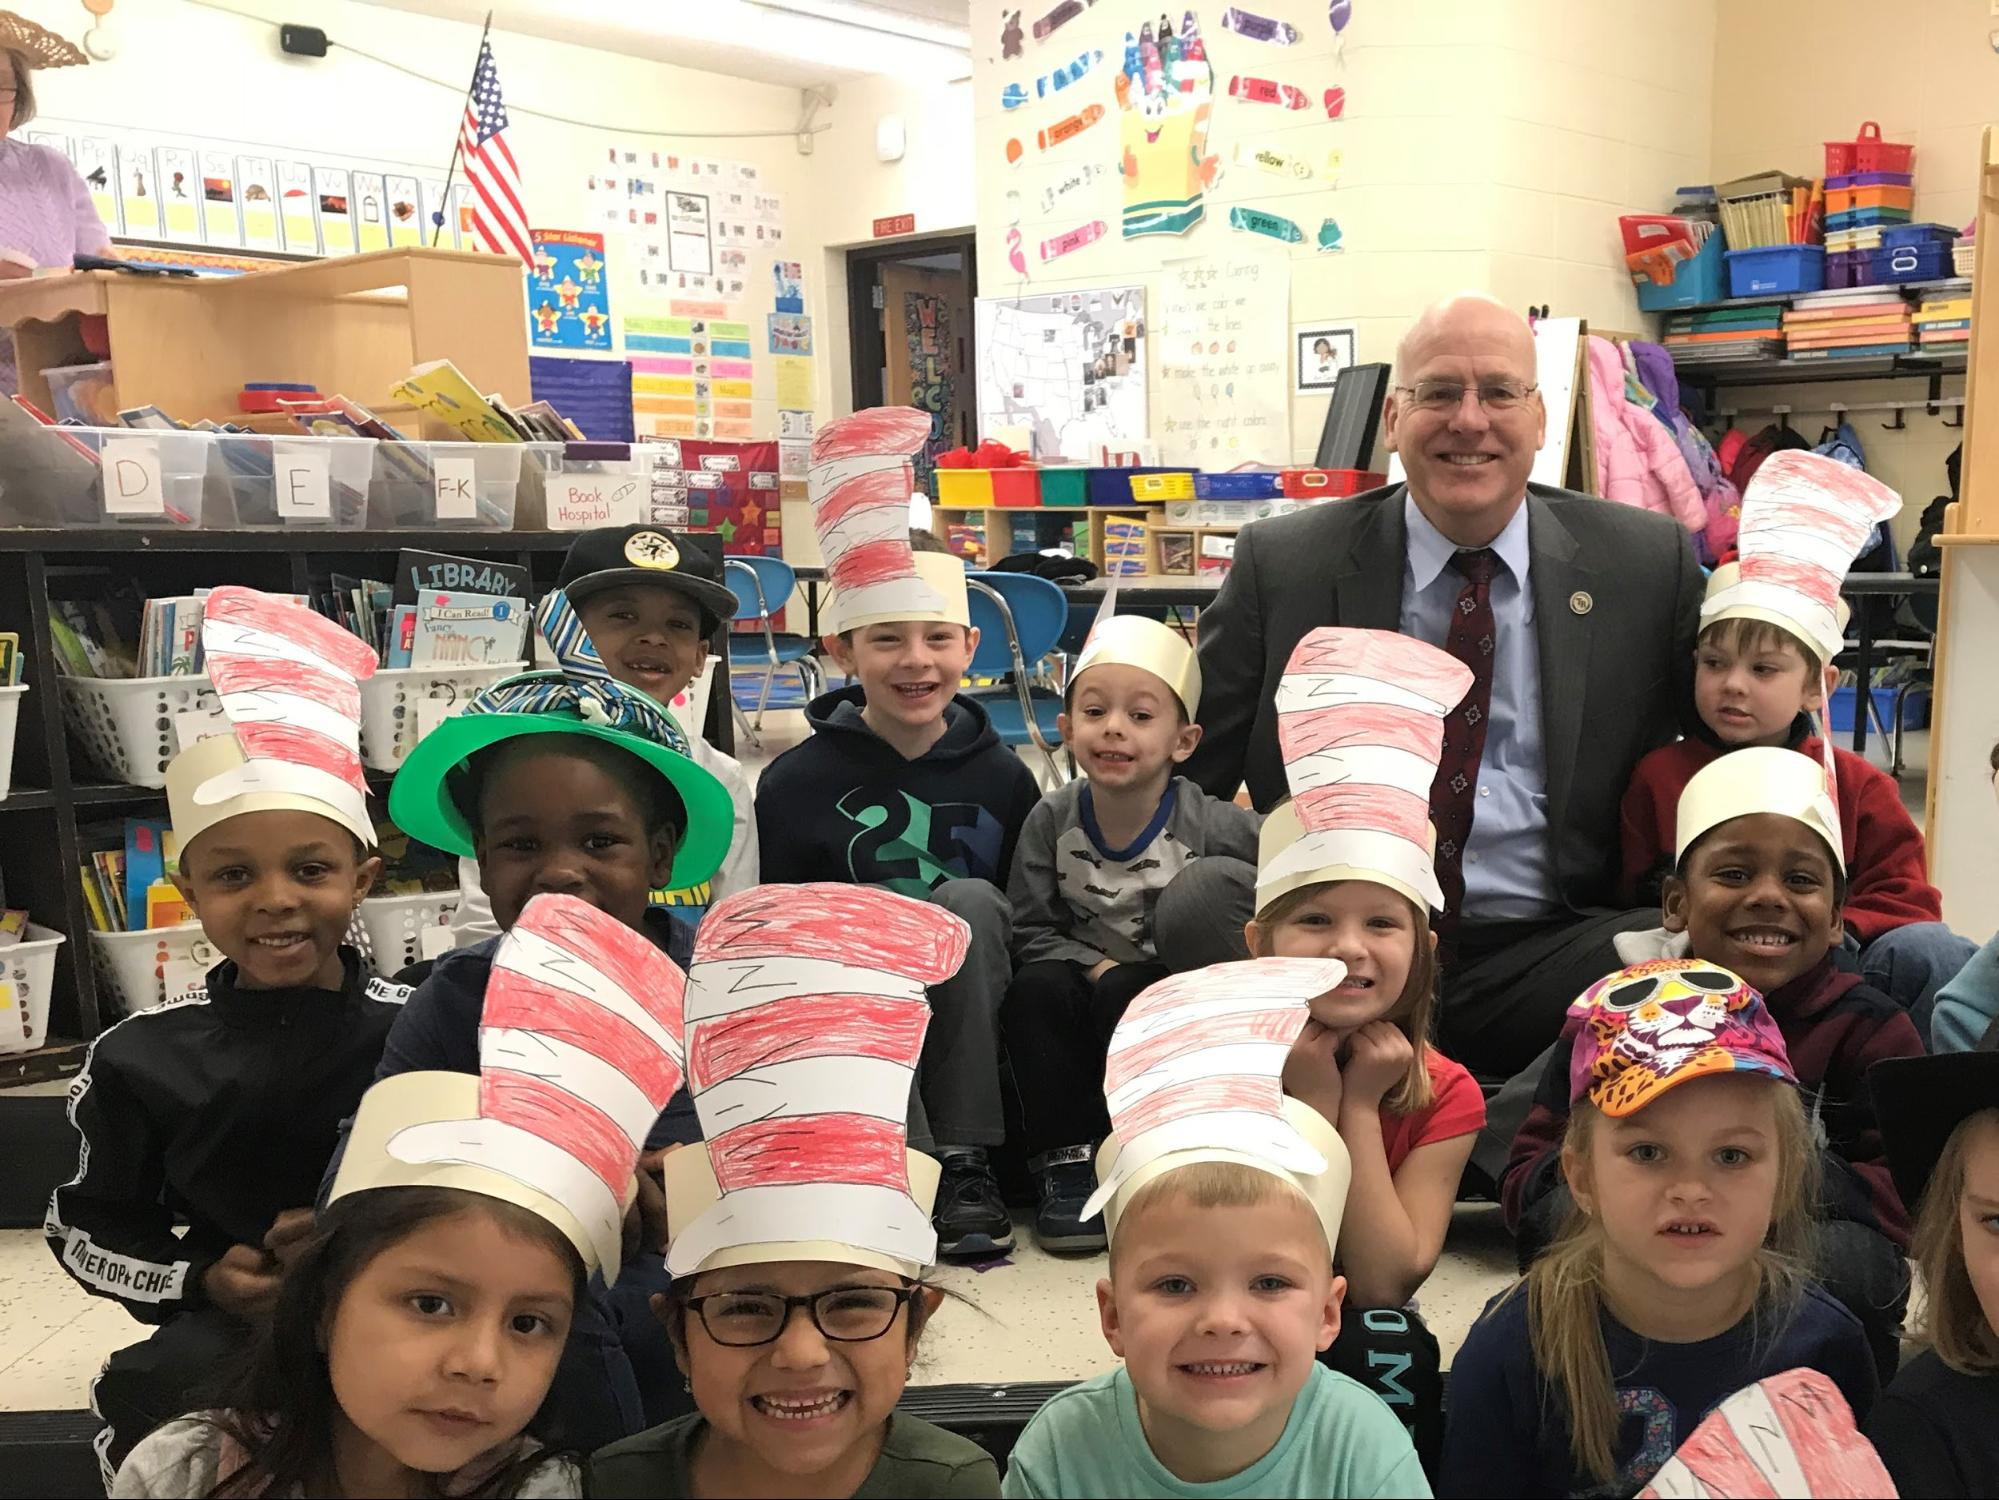 Superintendent David Healy and a group of Toms River kindergarten students. (Credit: TRRS)